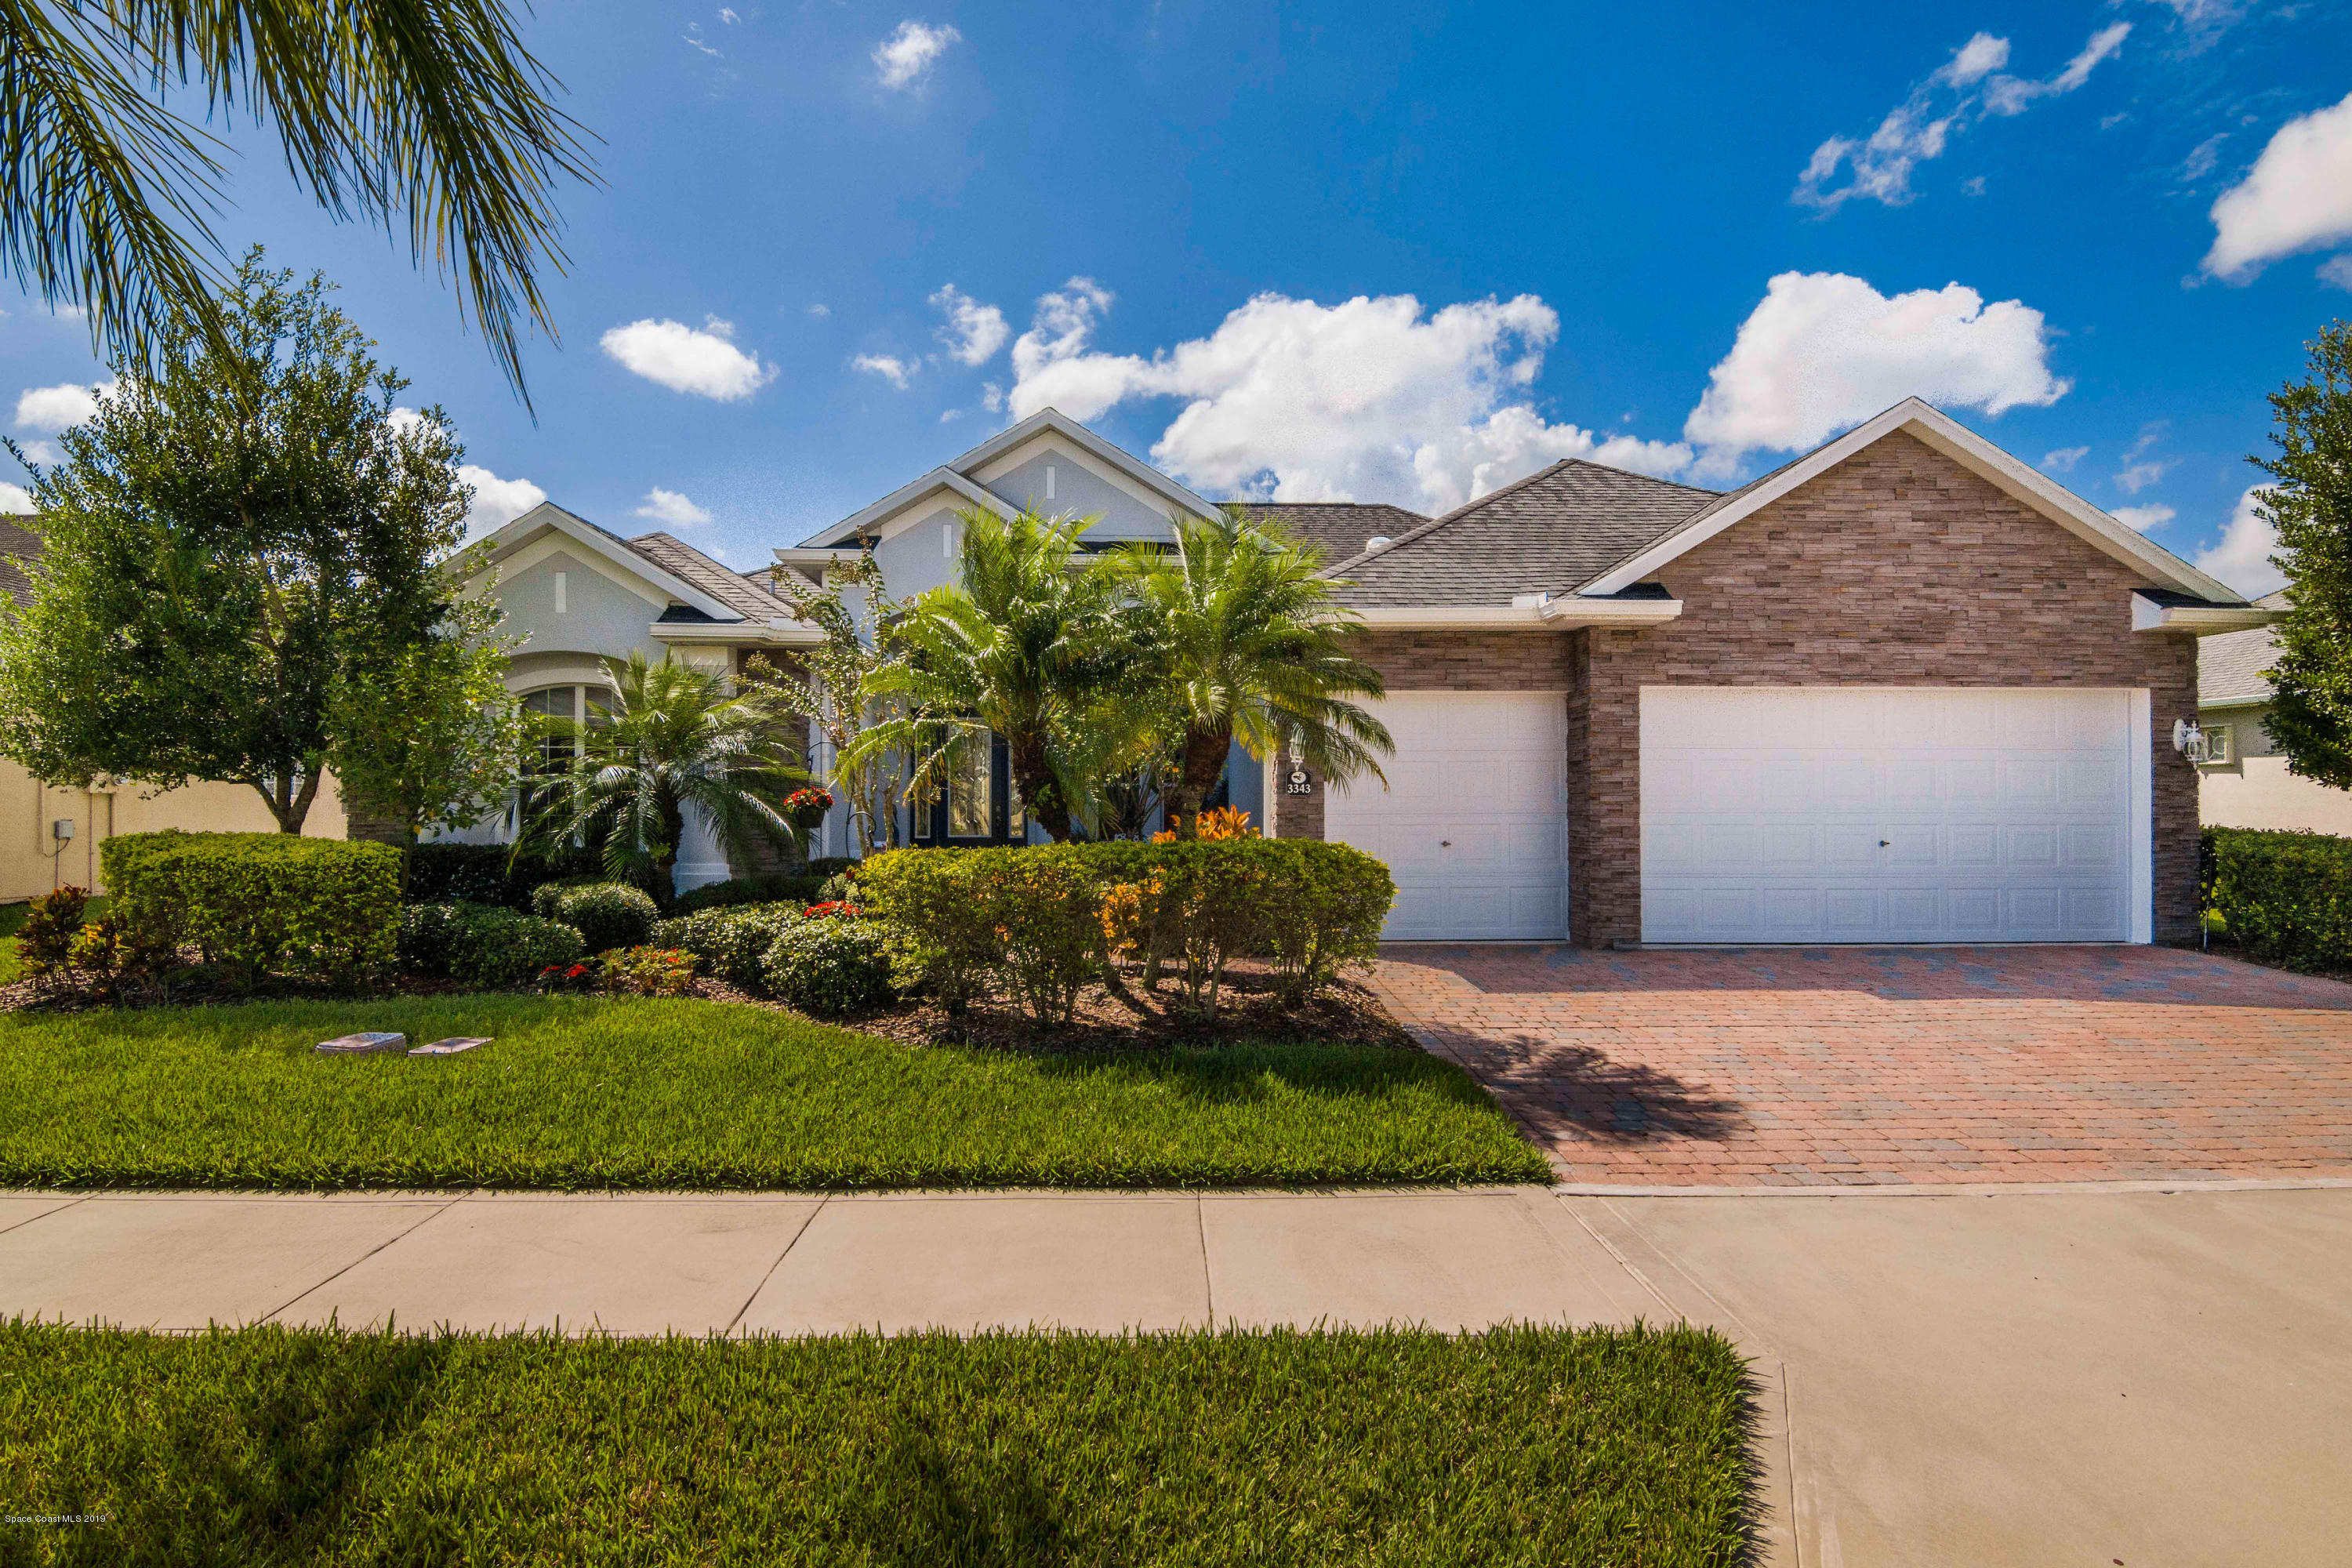 Single Family Homes for Sale at 3343 Carambola Melbourne, Florida 32940 United States